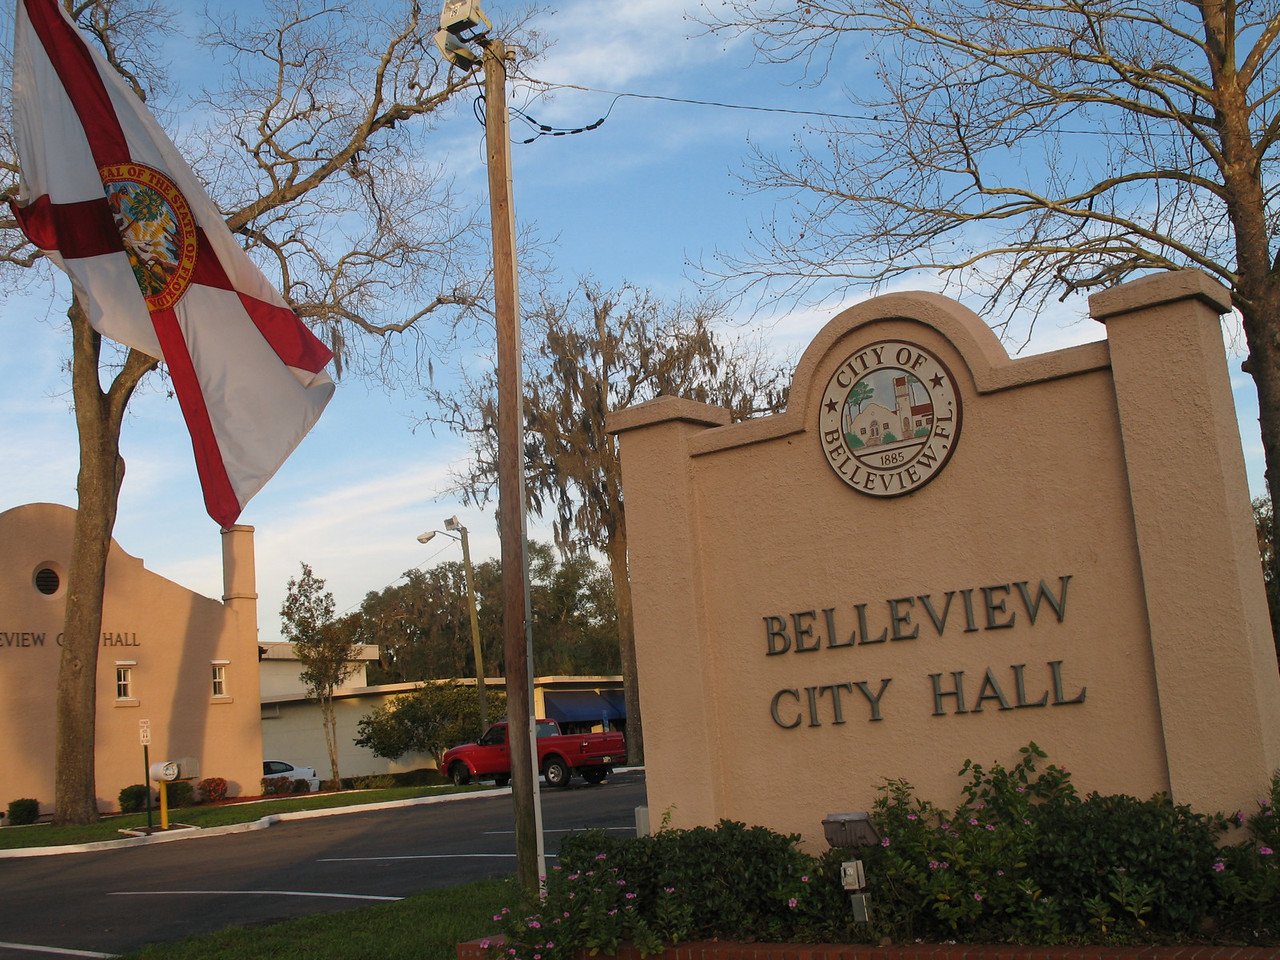 Belleview City Hall<br /> PHOTO CREDIT: Florida Trail Association / Sandra Friend